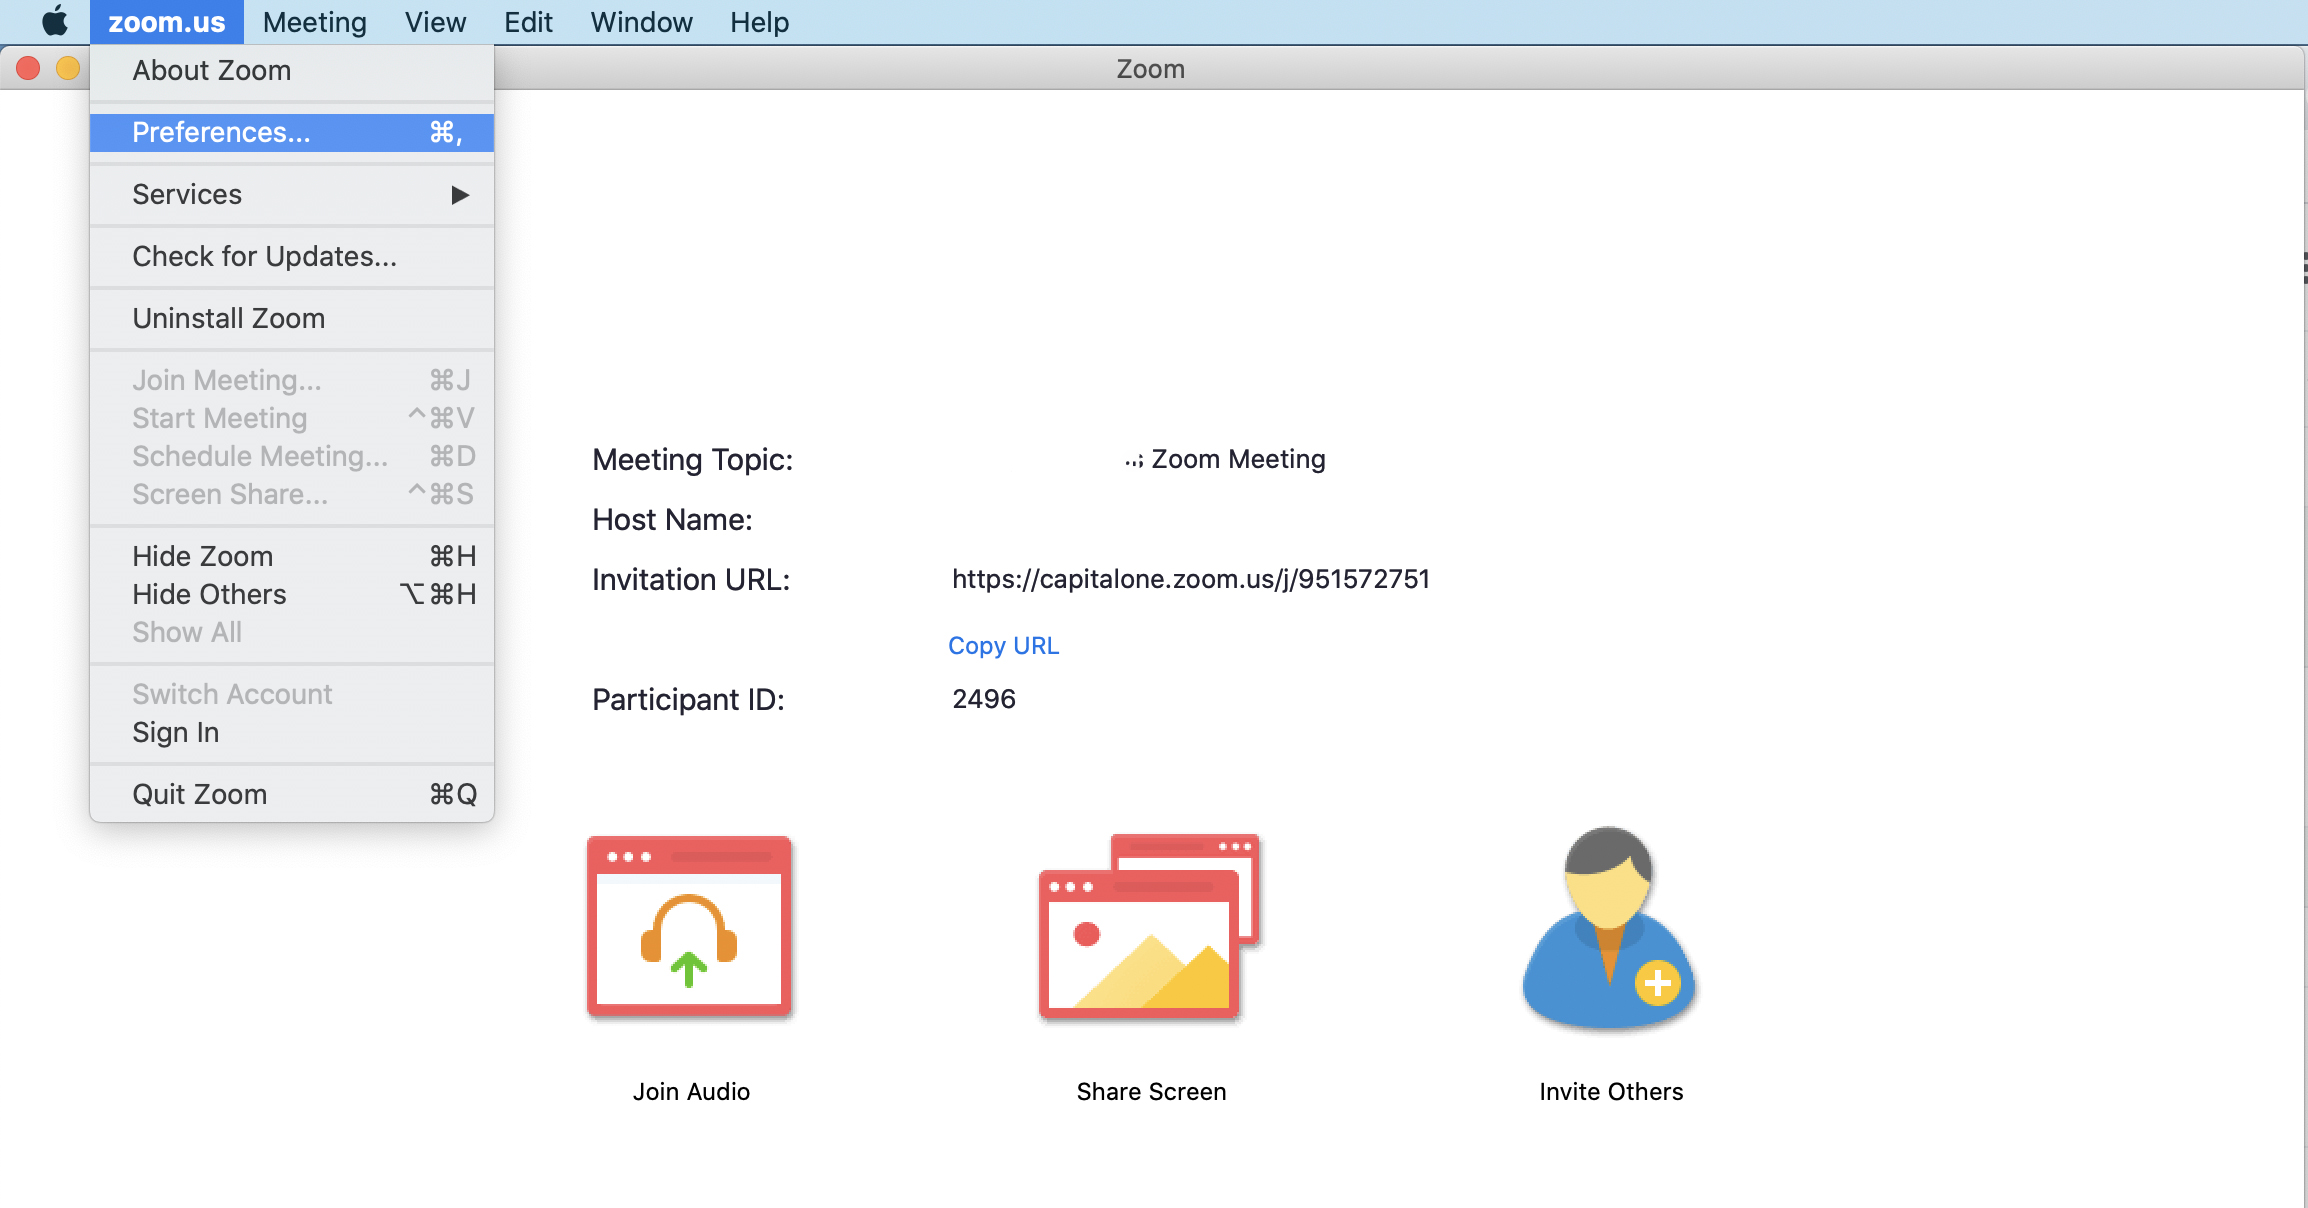 Capital One gives tips on using zoom backgrounds for virtual meetings and interviews